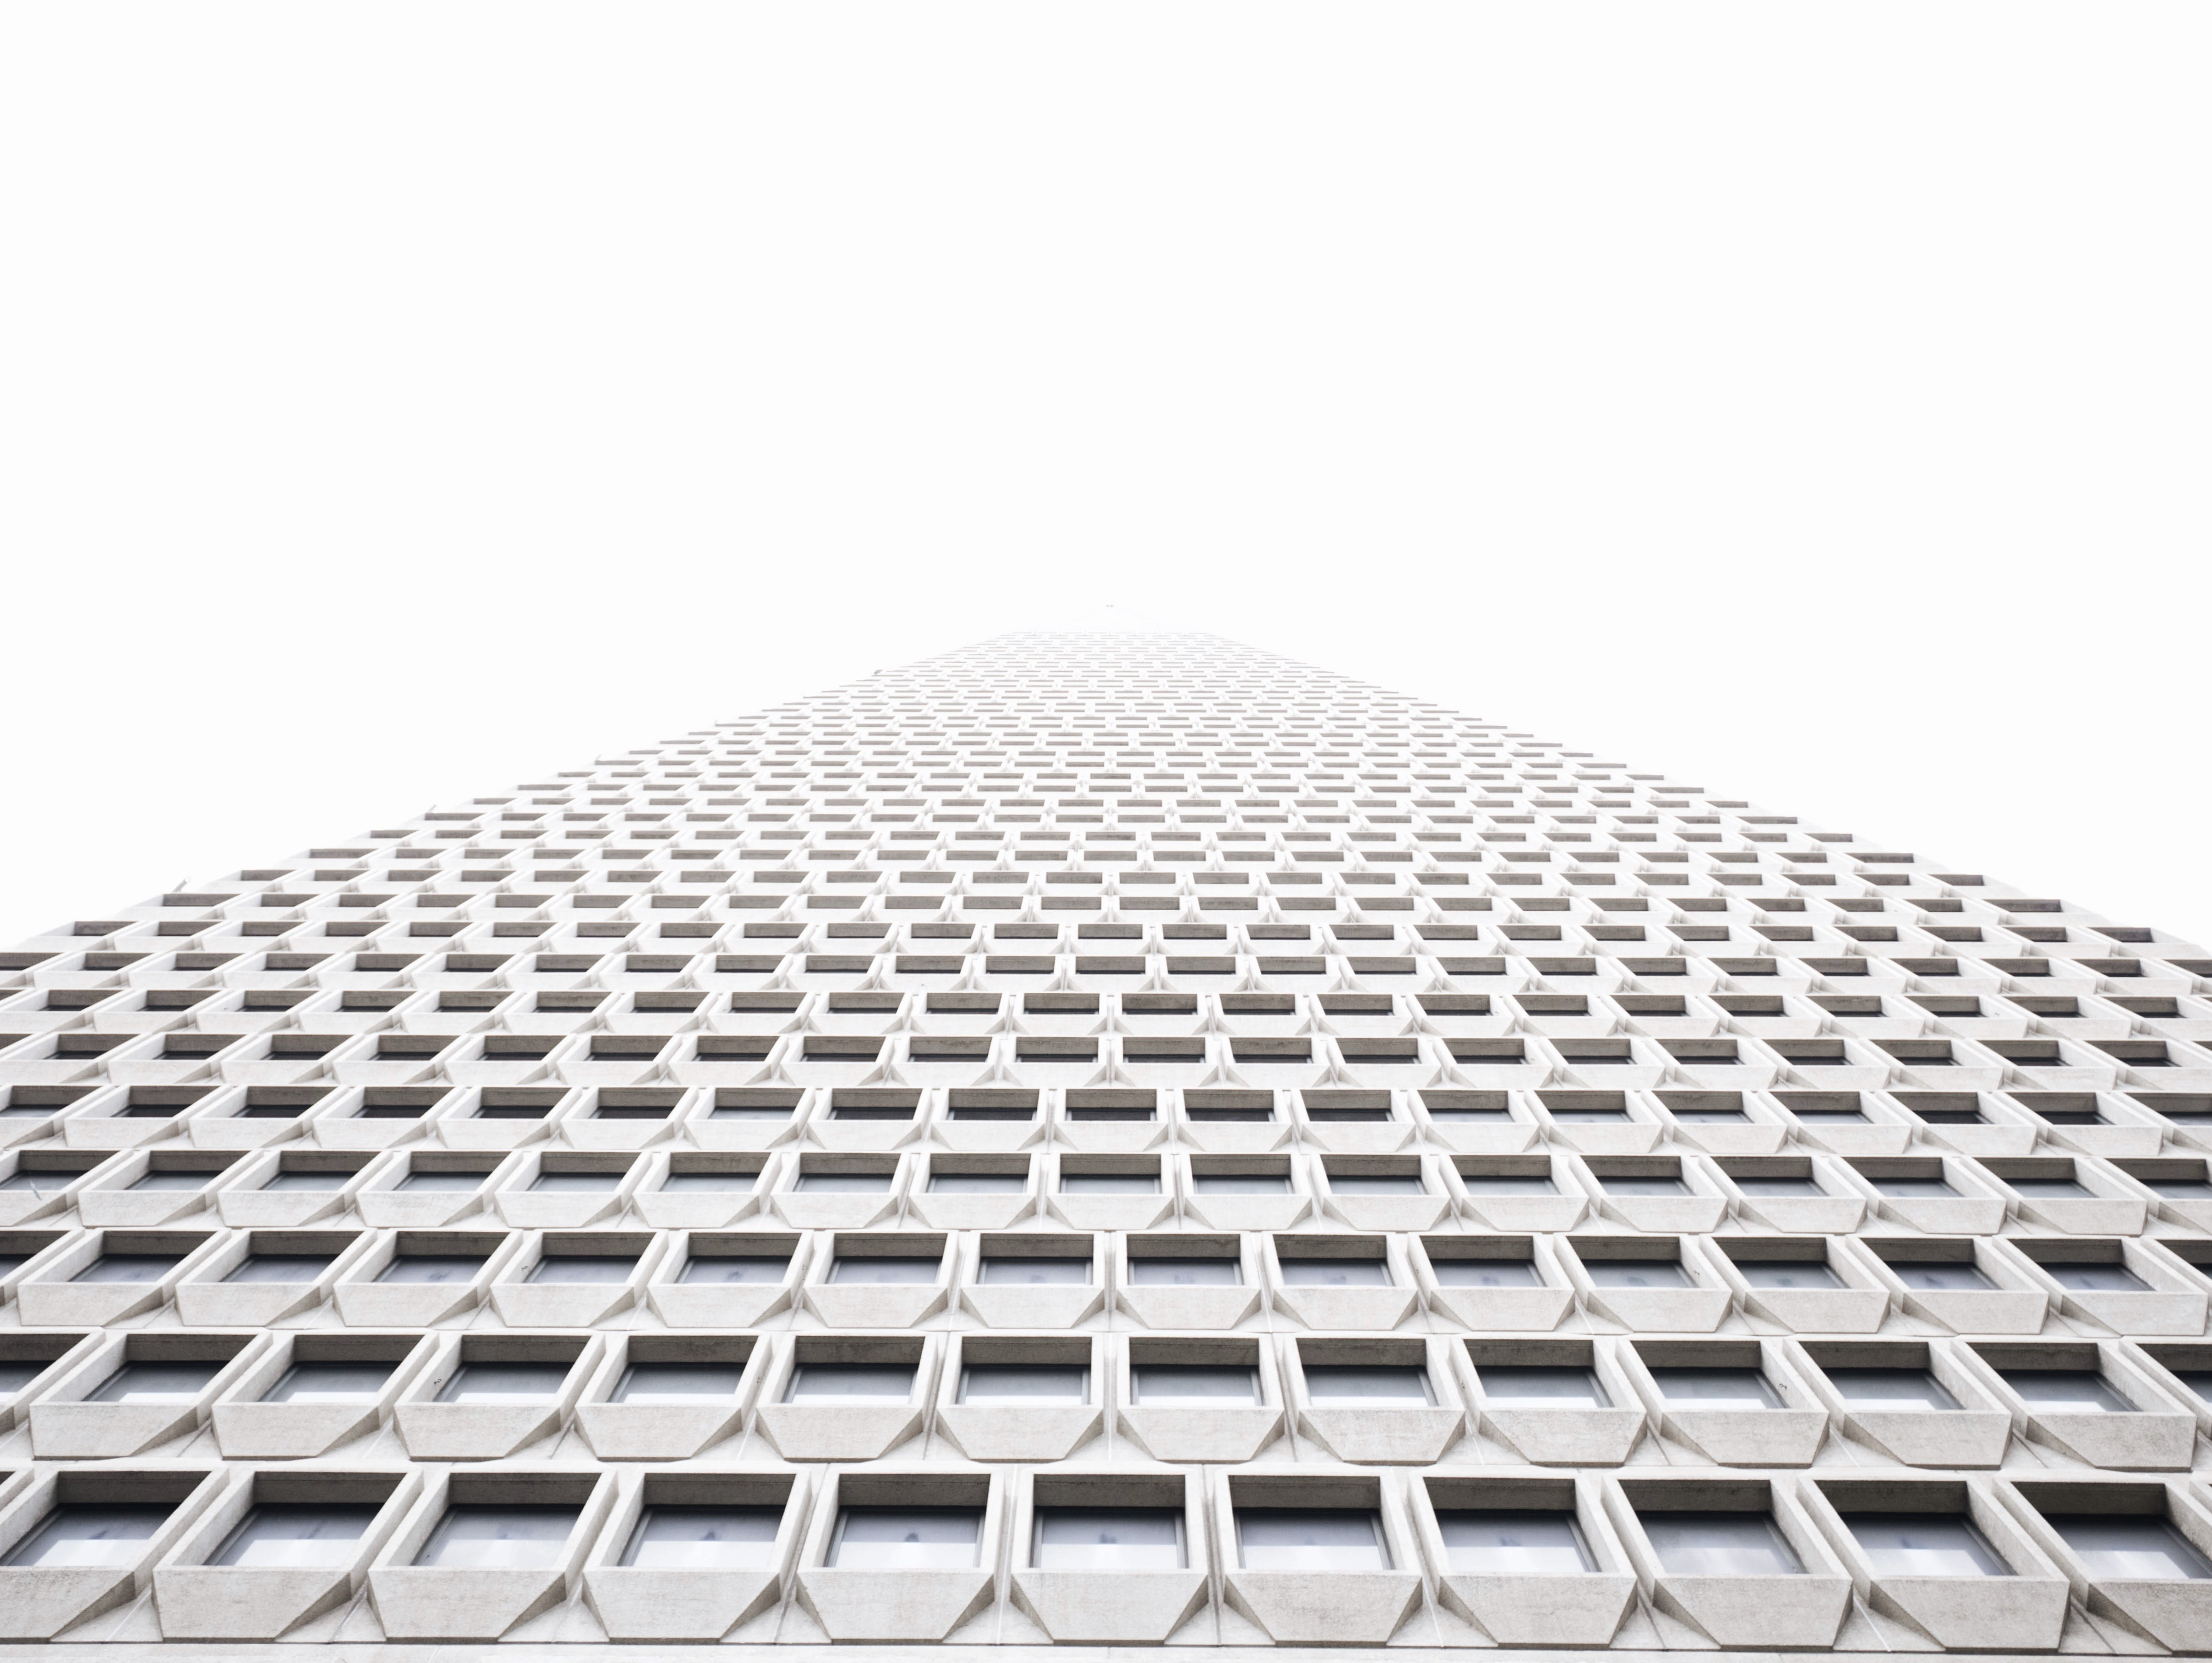 A low-angle shot of a towering building with a white facade